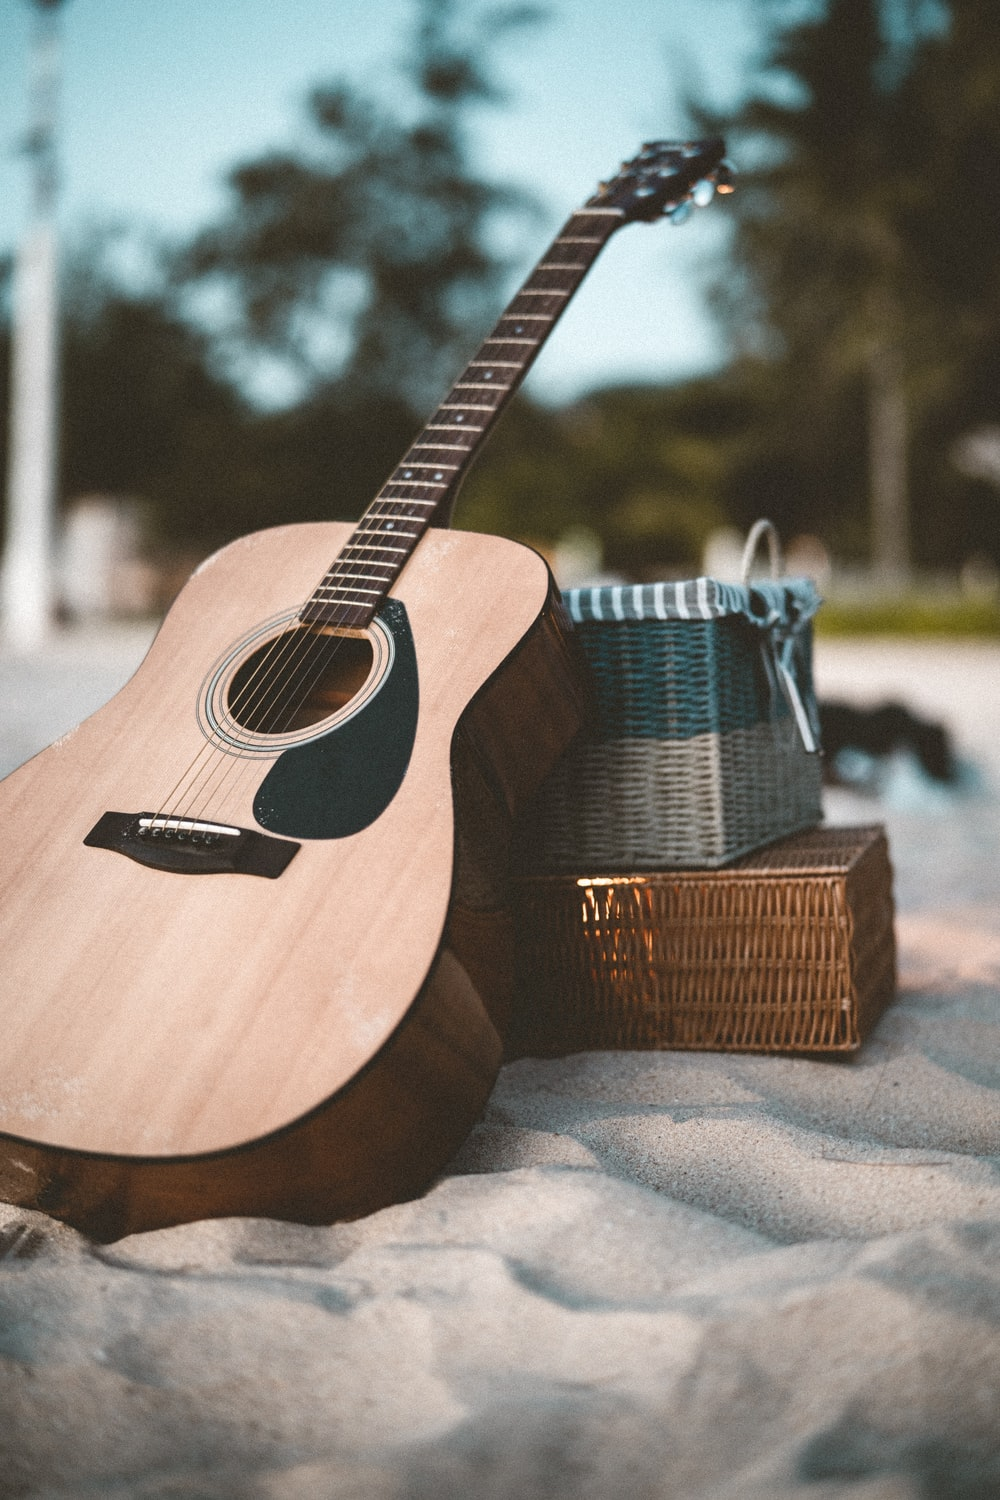 brown acoustic guitar on brown wooden table